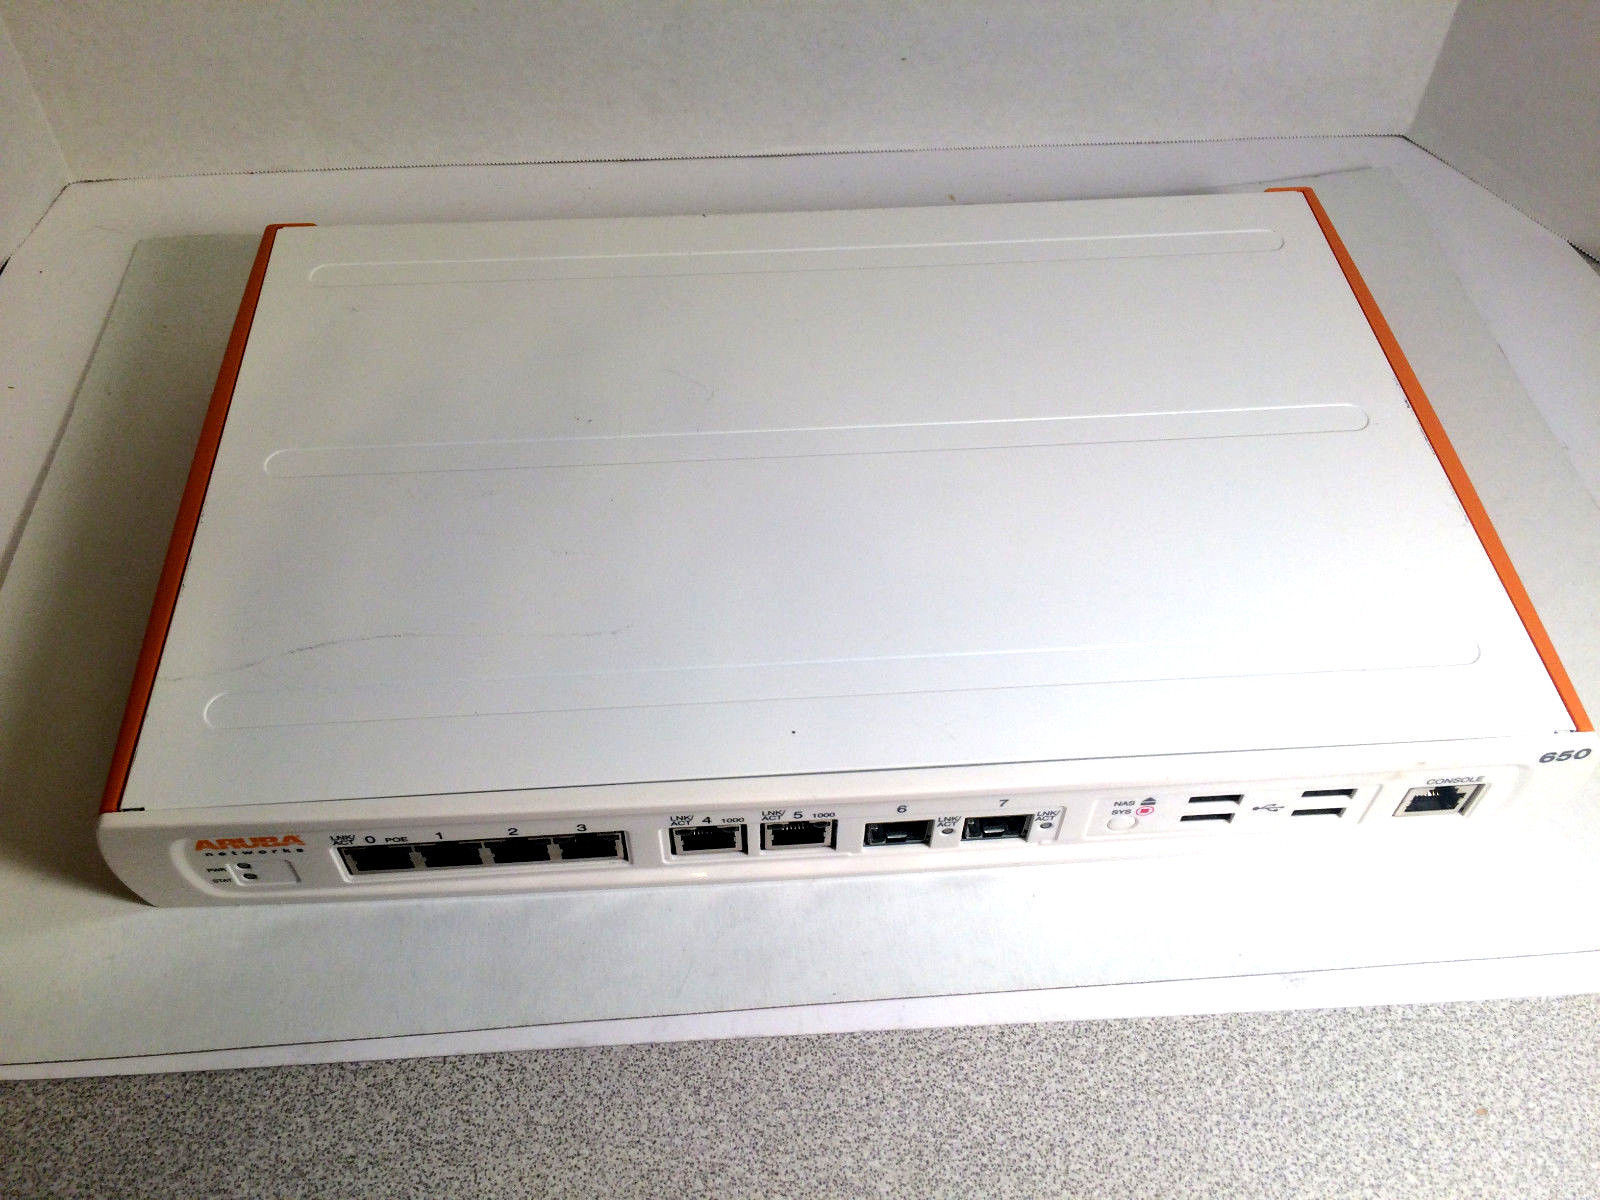 Aruba Networks 650 Wireless Mobility LAN Controller 650-US